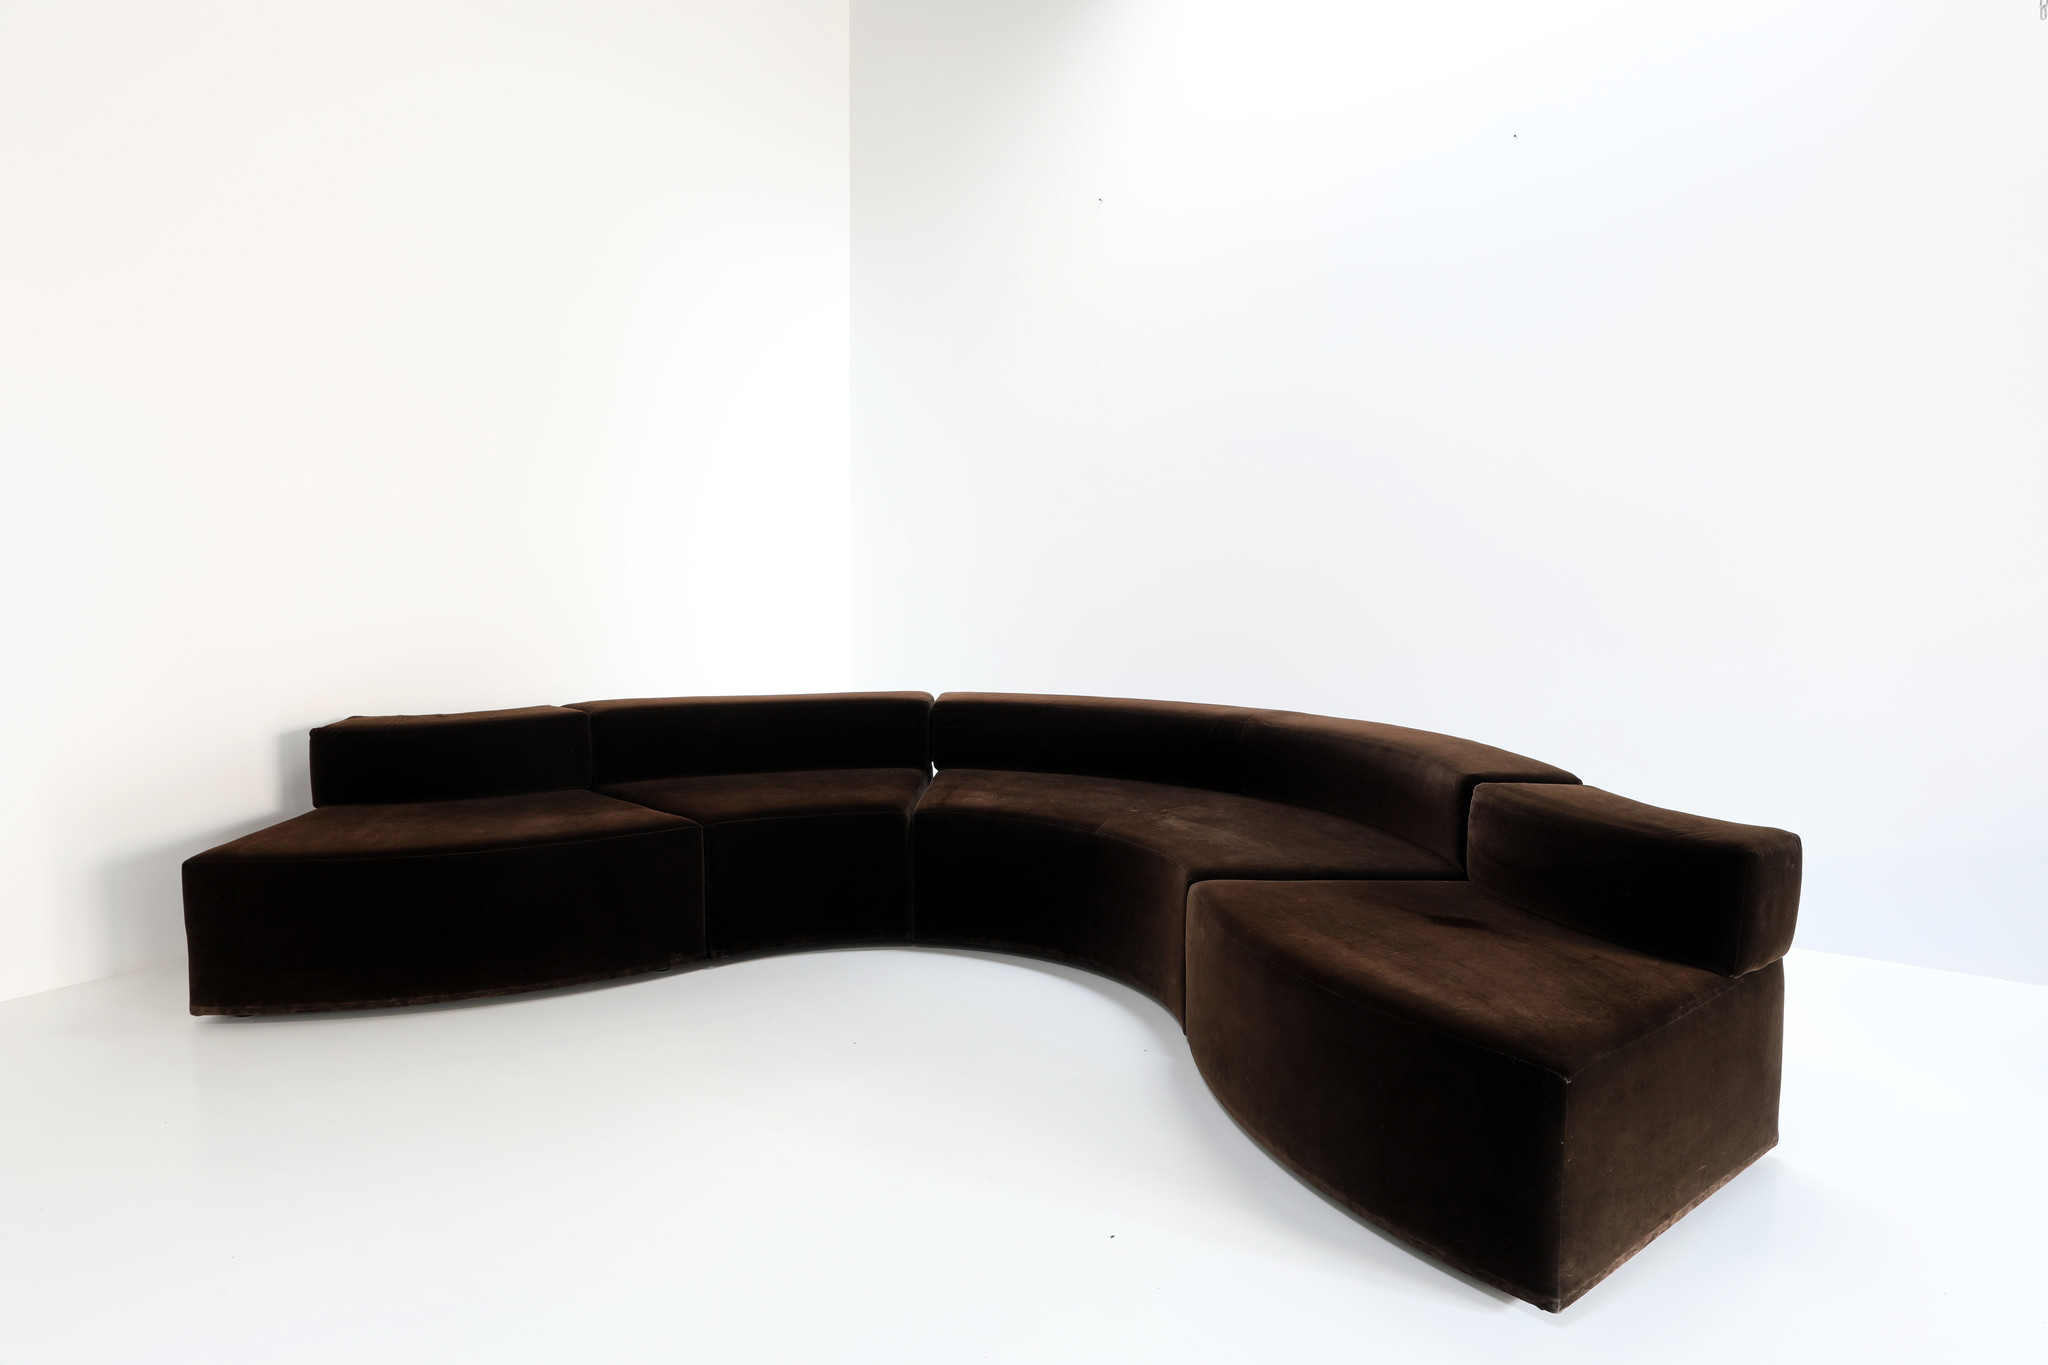 """Dune"" sofa designed by Ferrucio Laviani for Emmemobili"